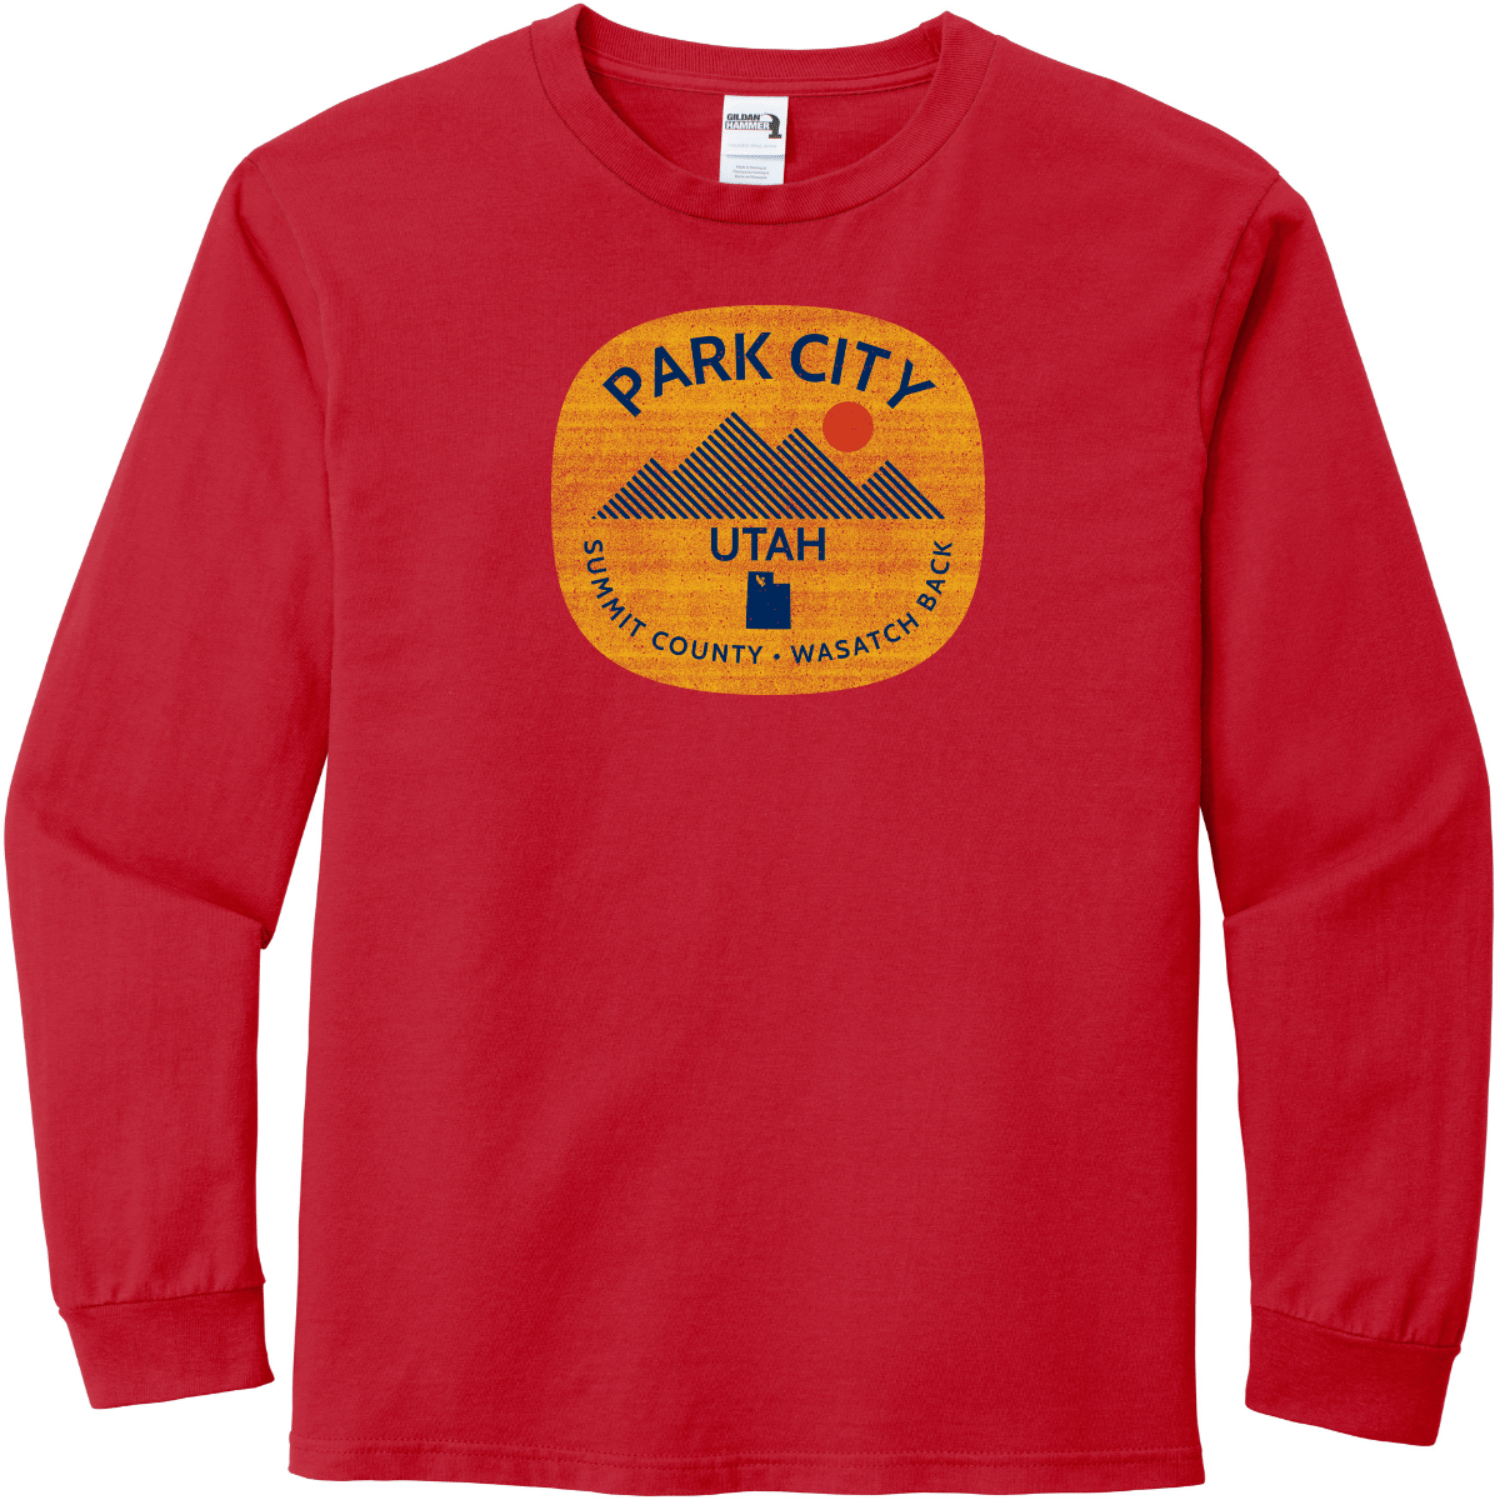 Park City Utah Long Sleeve T-Shirt Sport Scarlet Red Gildan Hammer Long Sleeve T Shirt